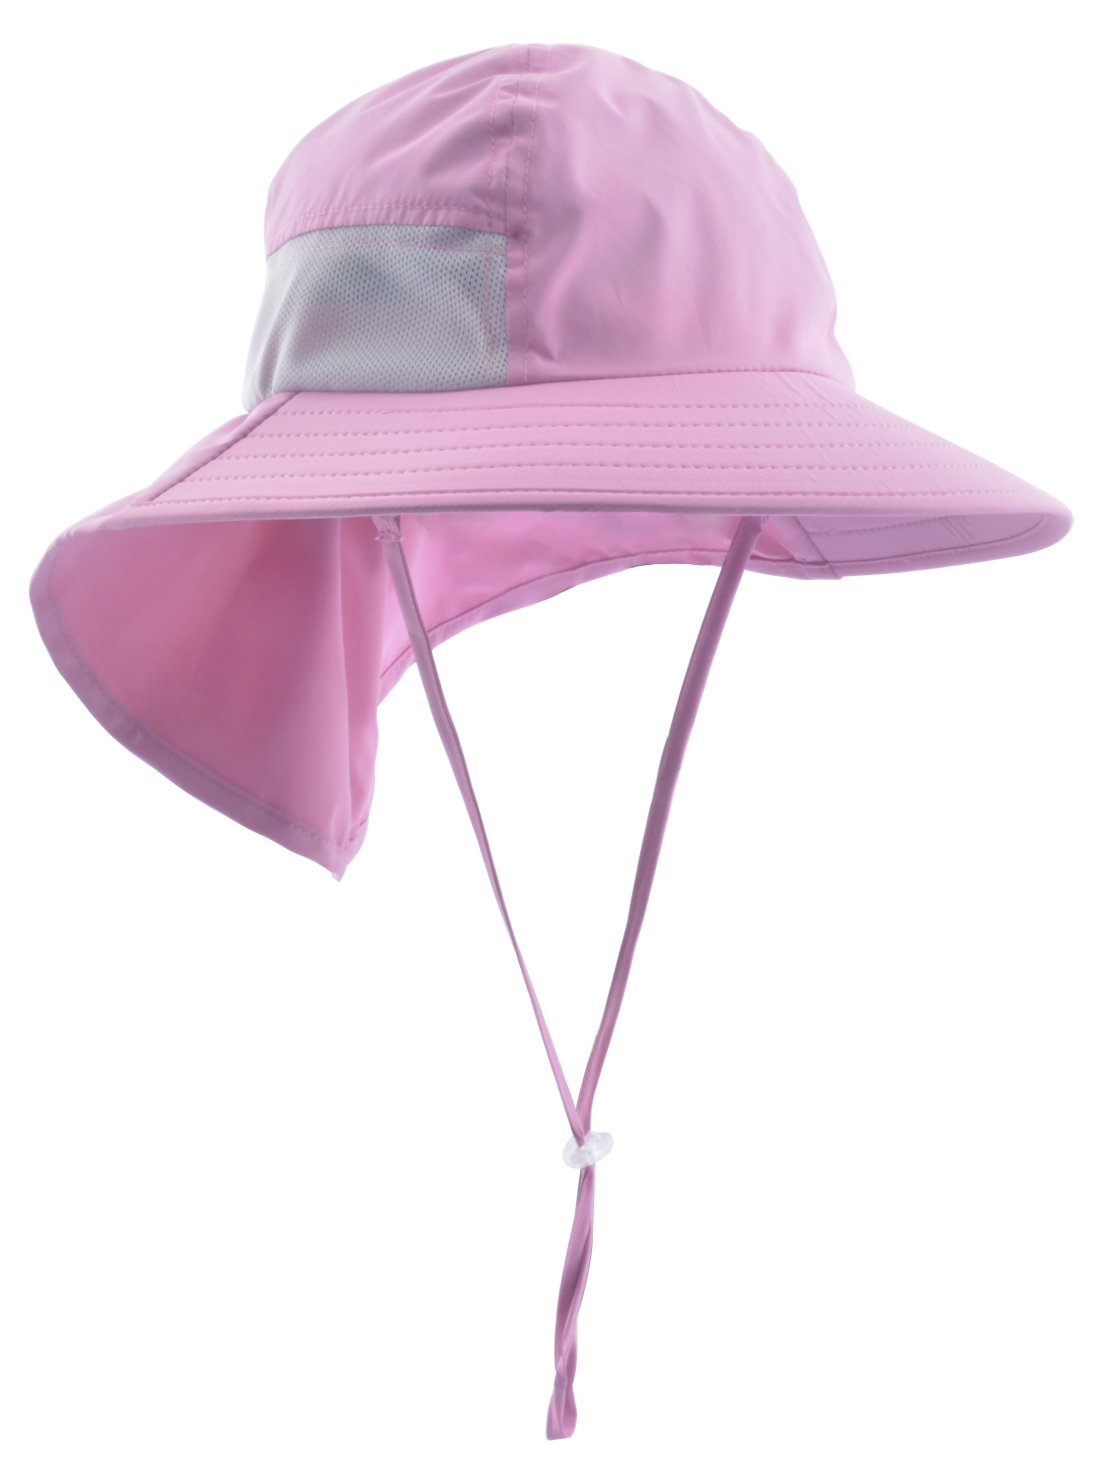 Lenikis Kids Outdoor Activities UV Protecting Sun Hats with Neck Flap Pink